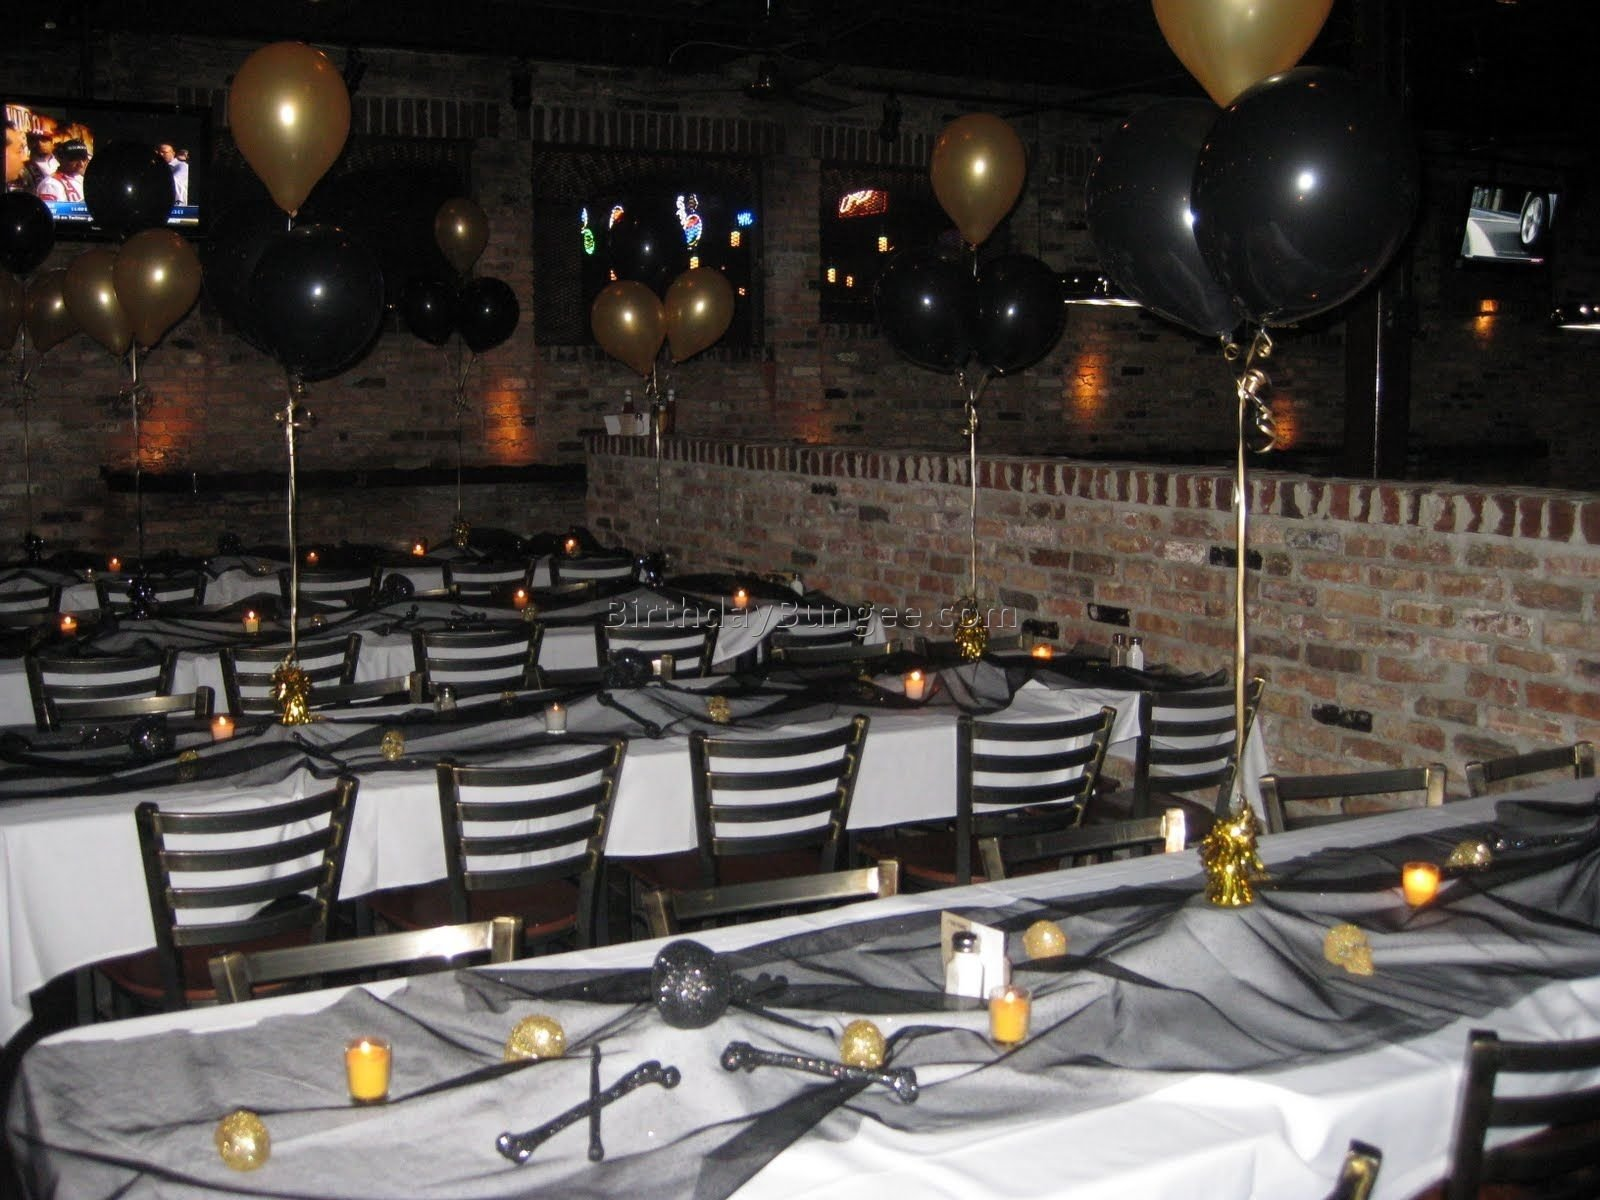 10 Lovable Birthday Party Ideas For Men cute party ideas along with usa in th birthday male st then th 2020